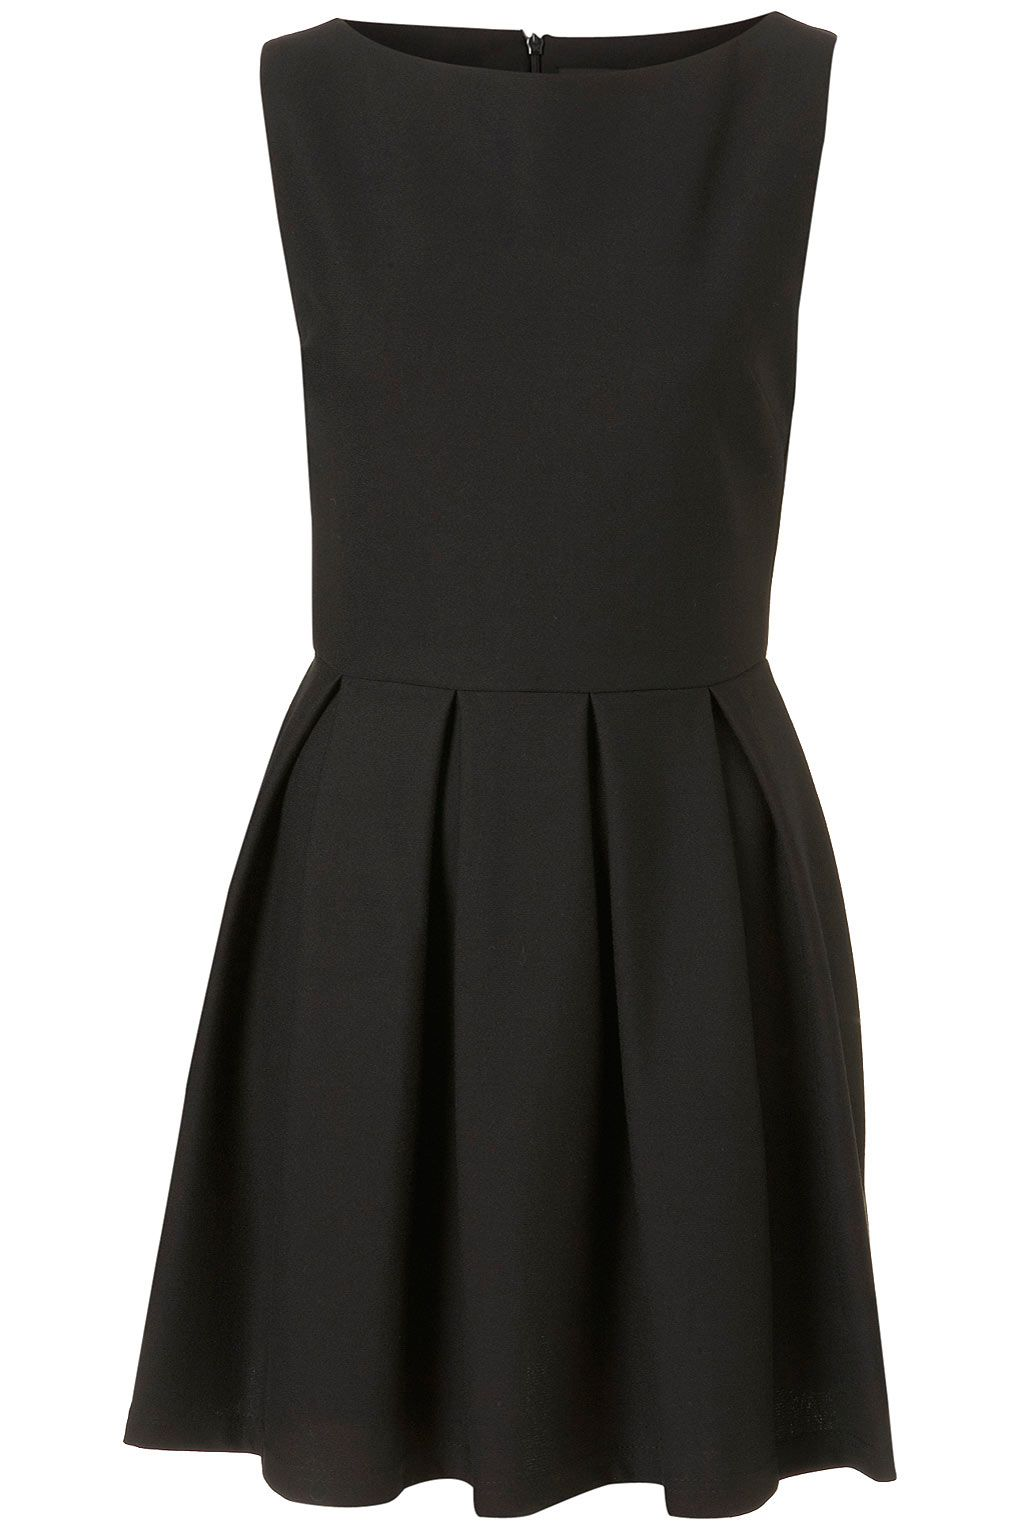 Page Not Found Sleeveless Skater Dress Fit N Flare Dress Dresses [ 1530 x 1021 Pixel ]